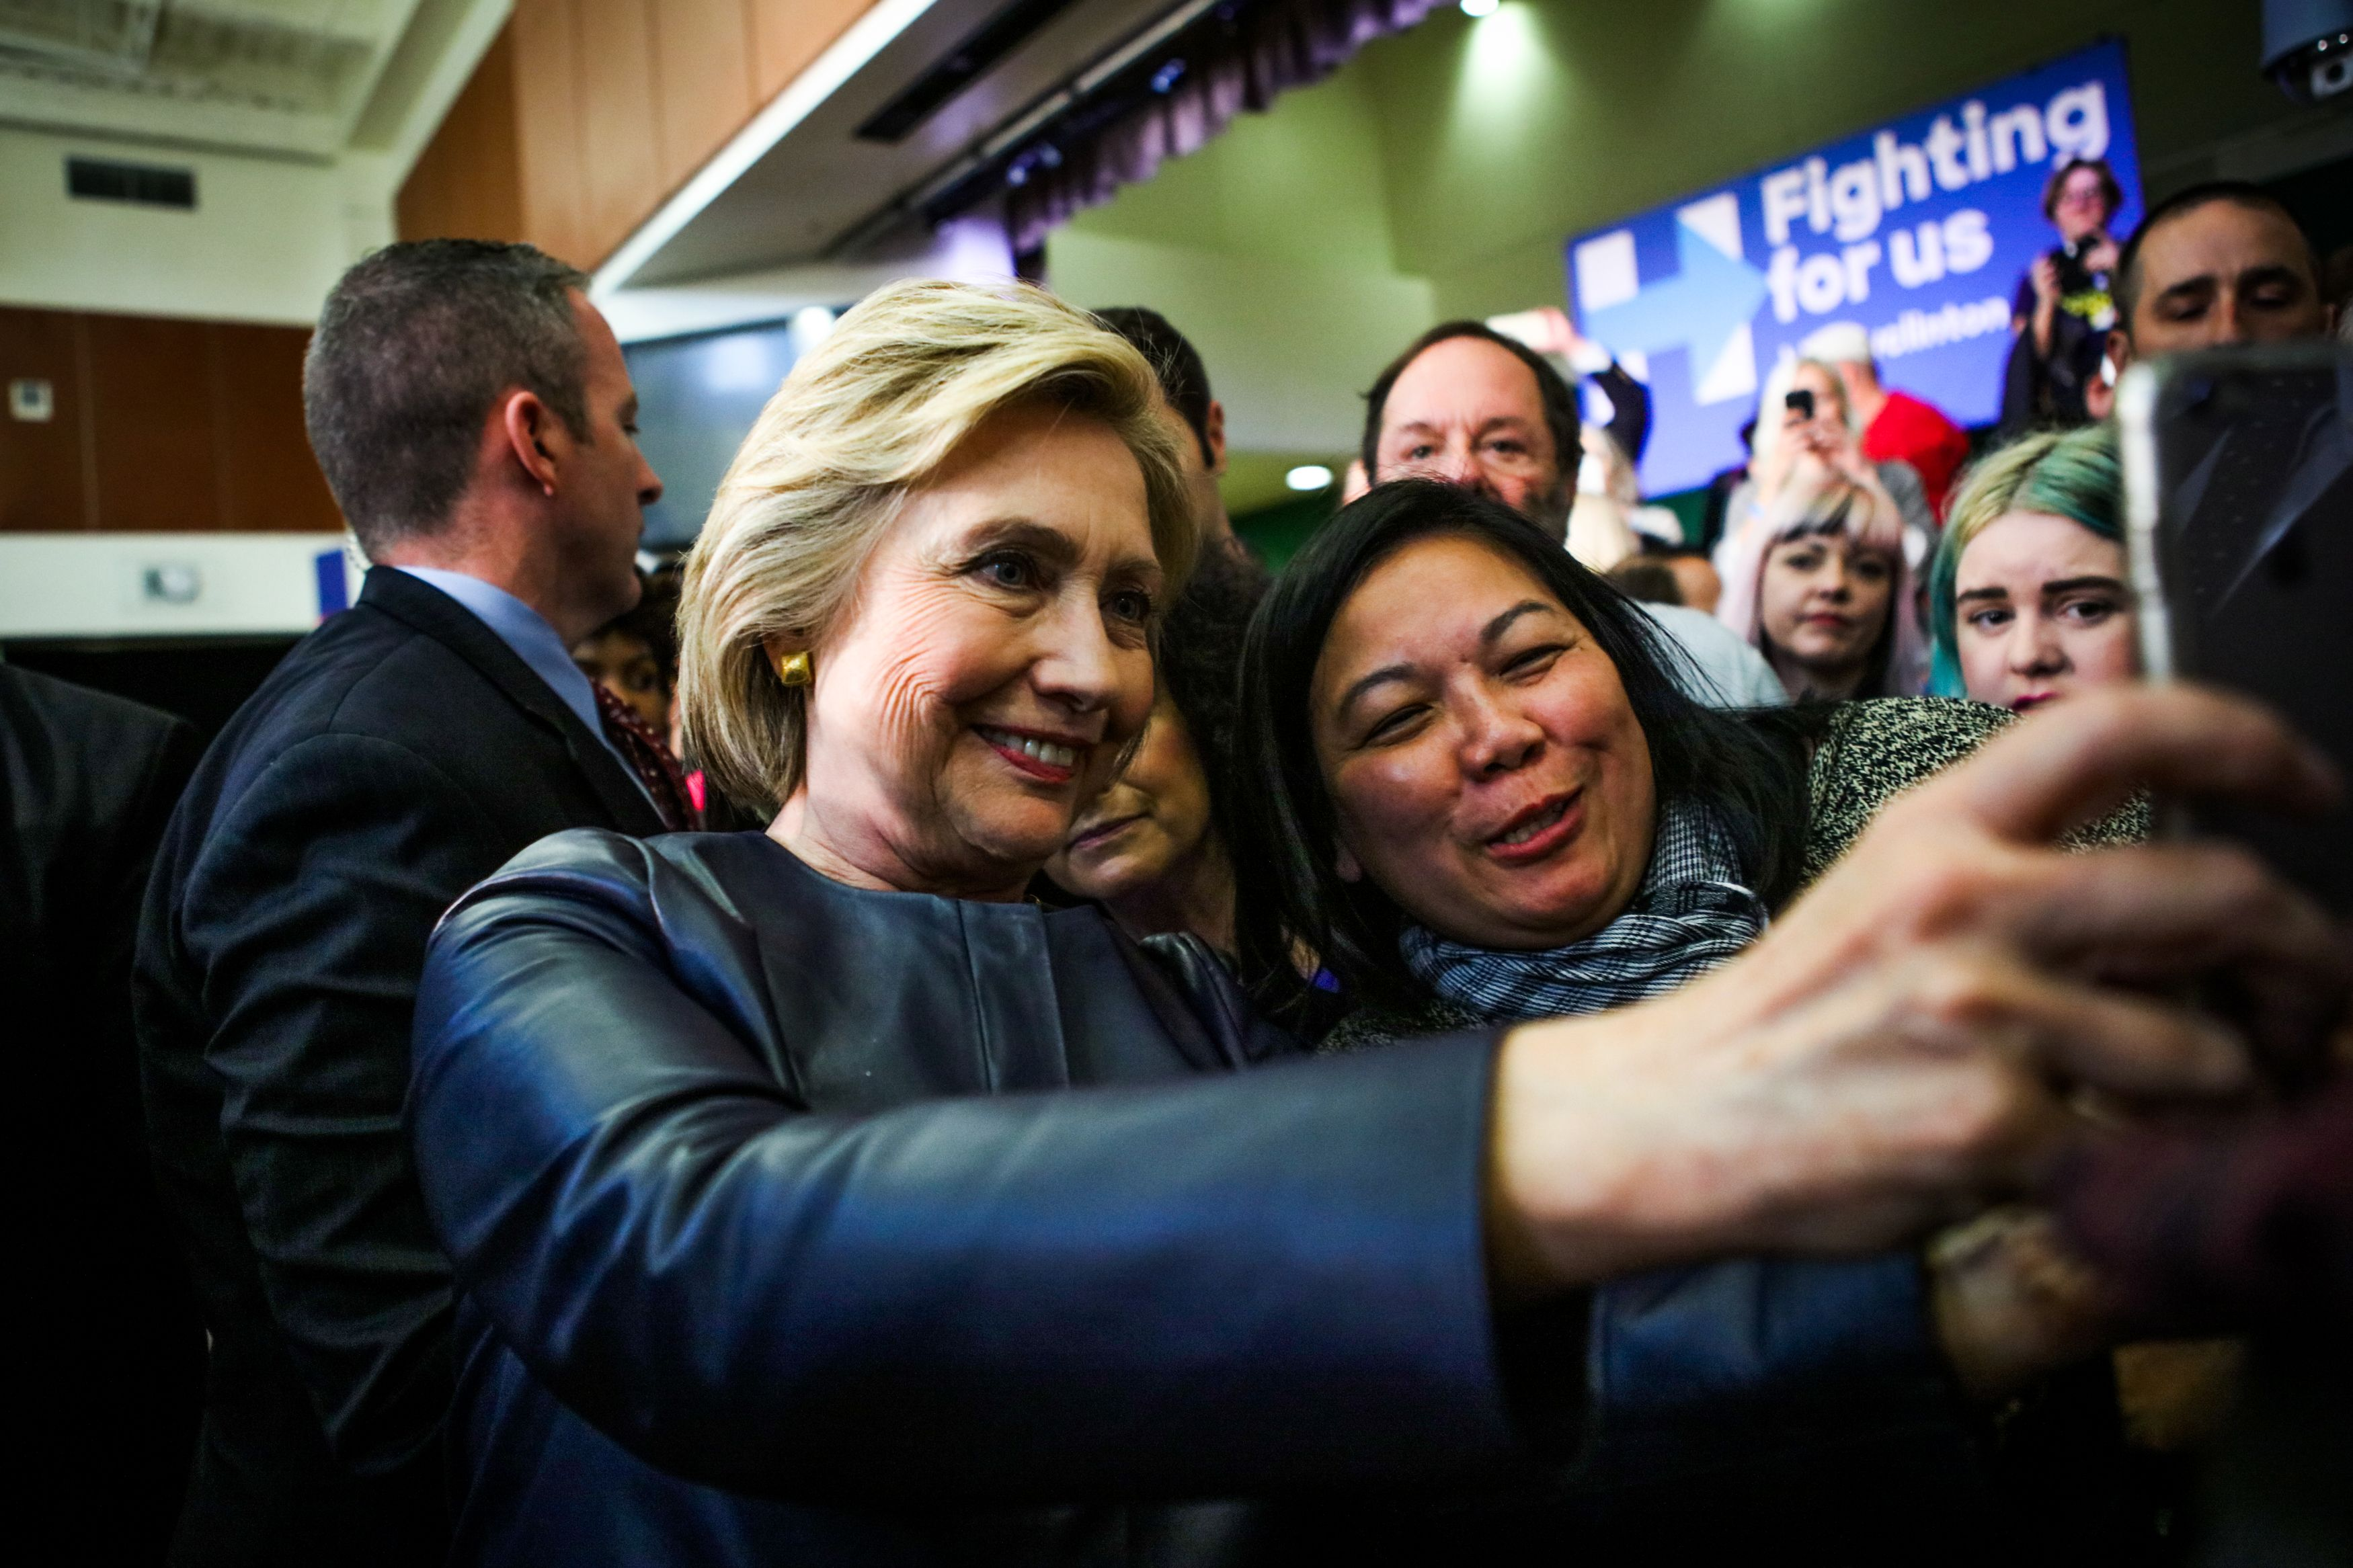 Clinton more likely to win U.S. presidency than Trump: PredictIt